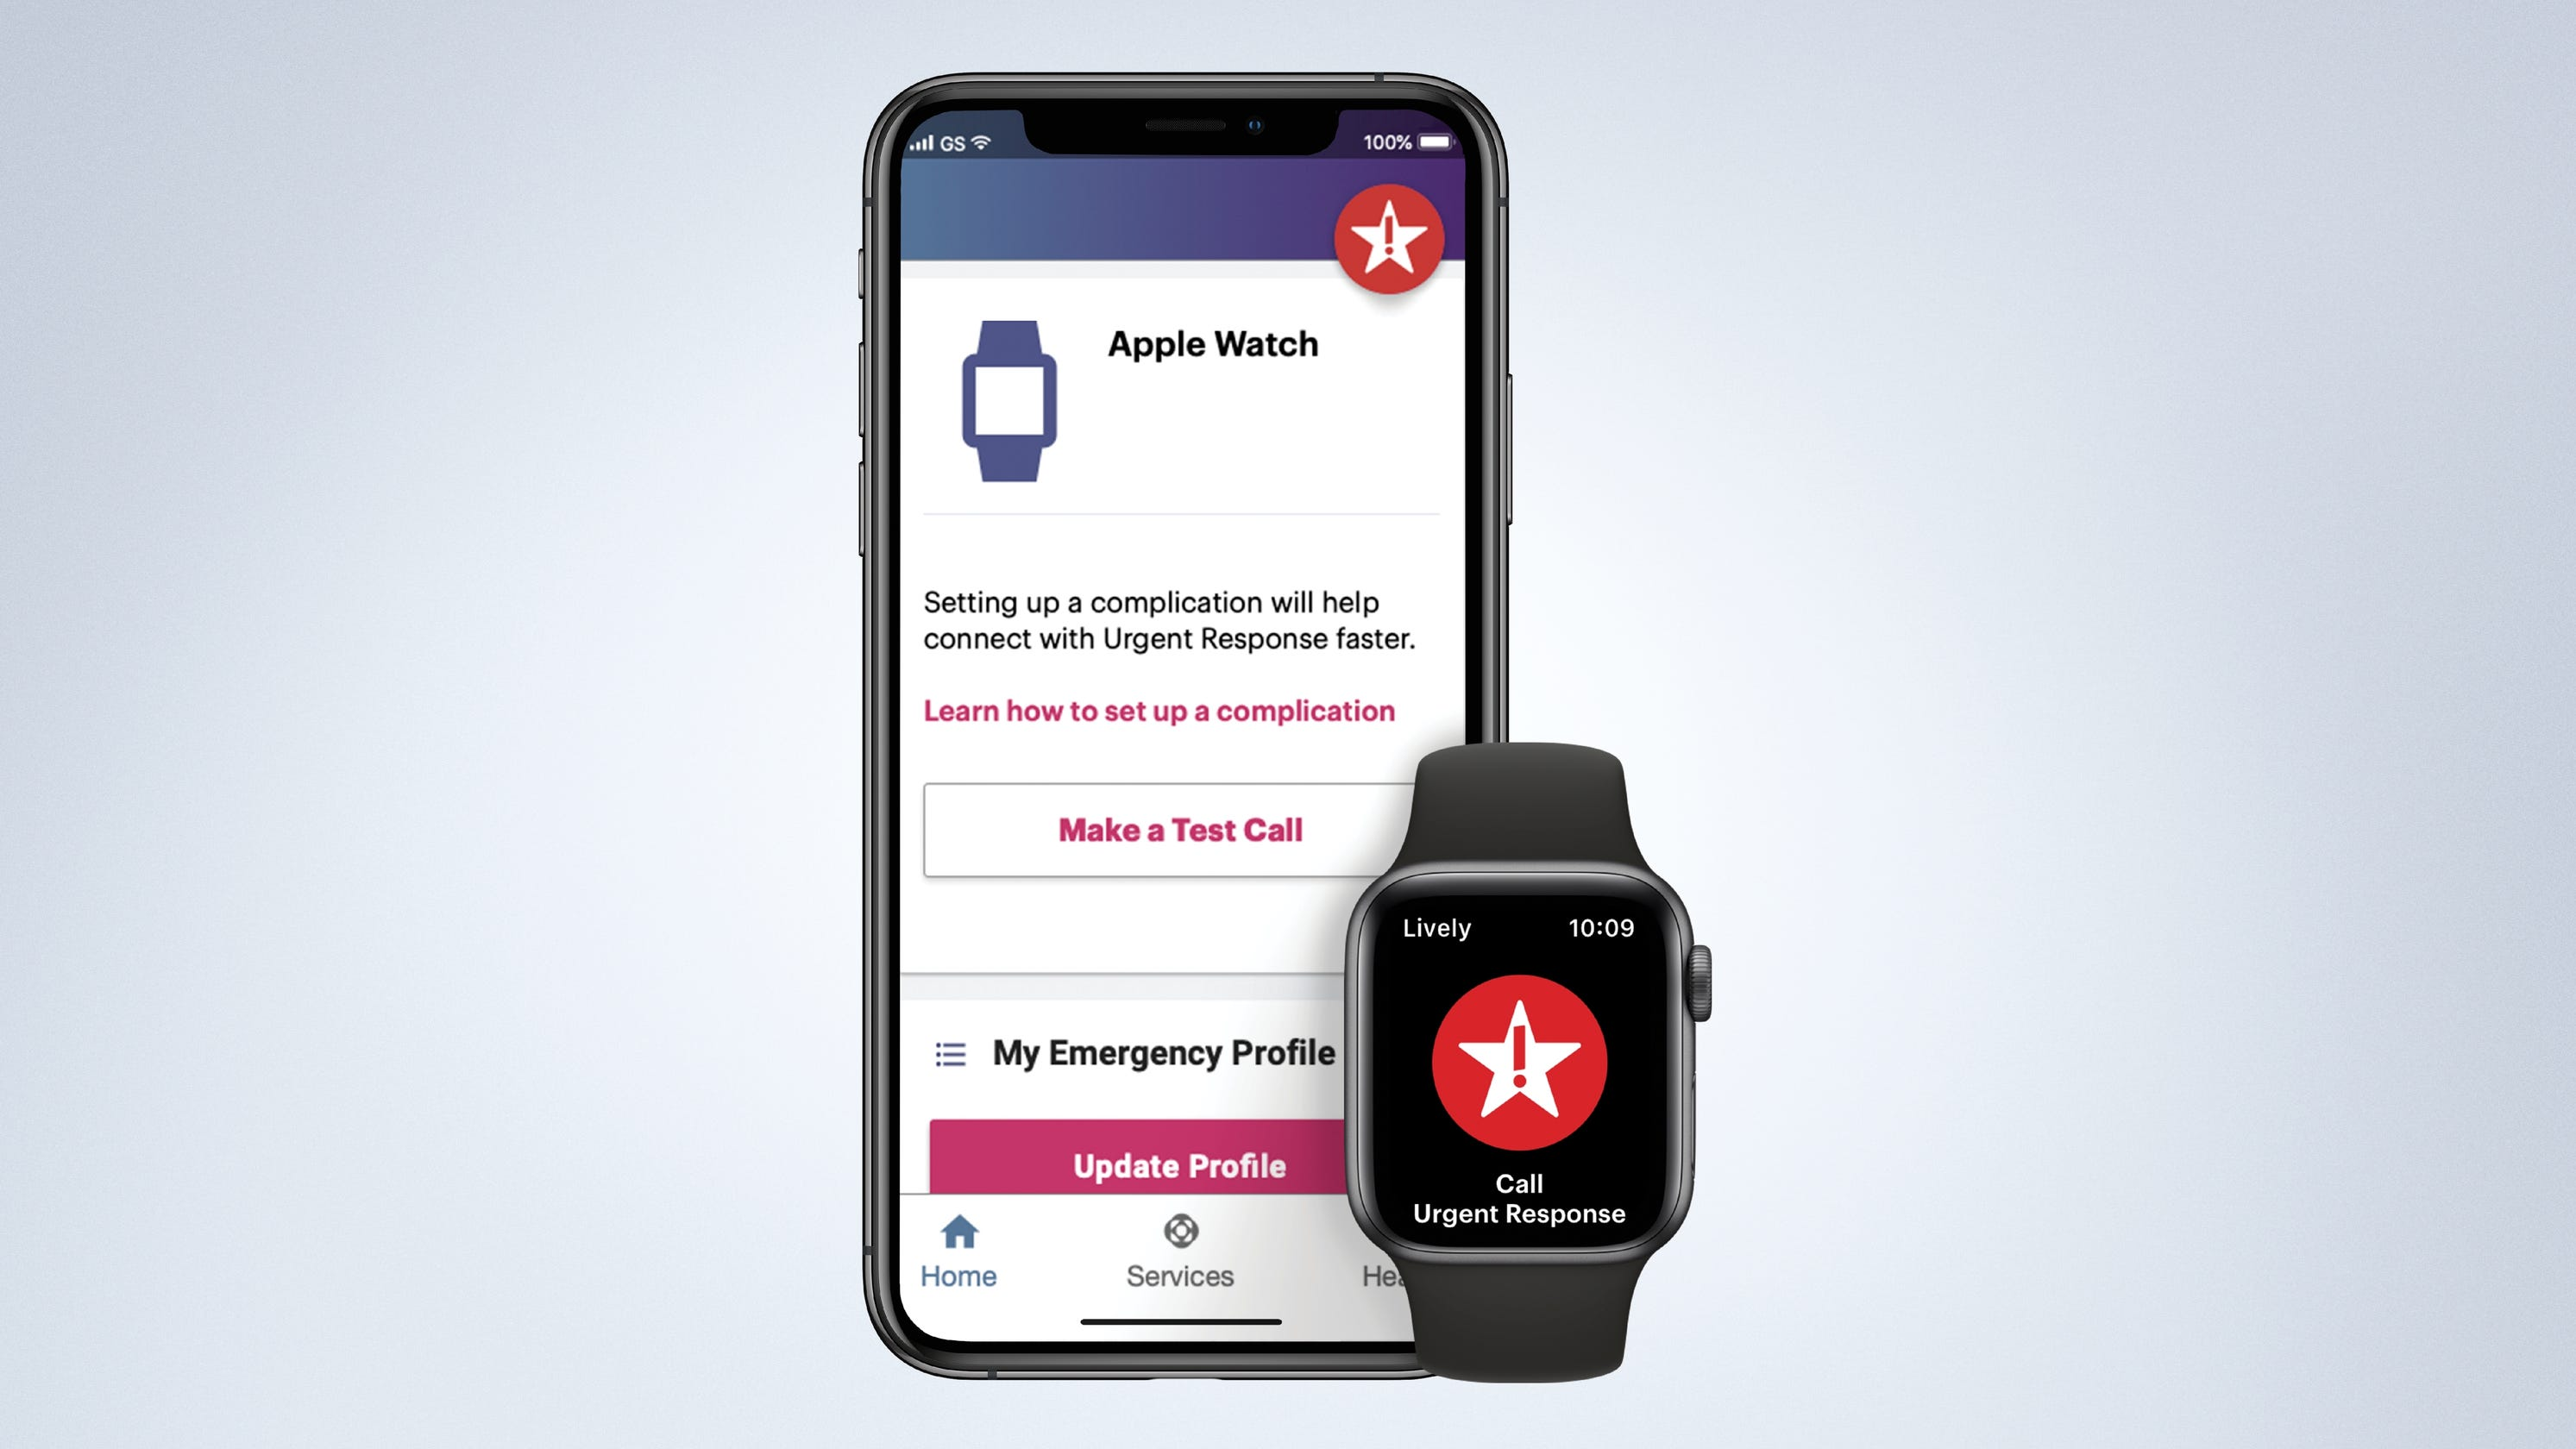 New Best Buy Health services for Apple Watch aim to keep older adults safe and independent